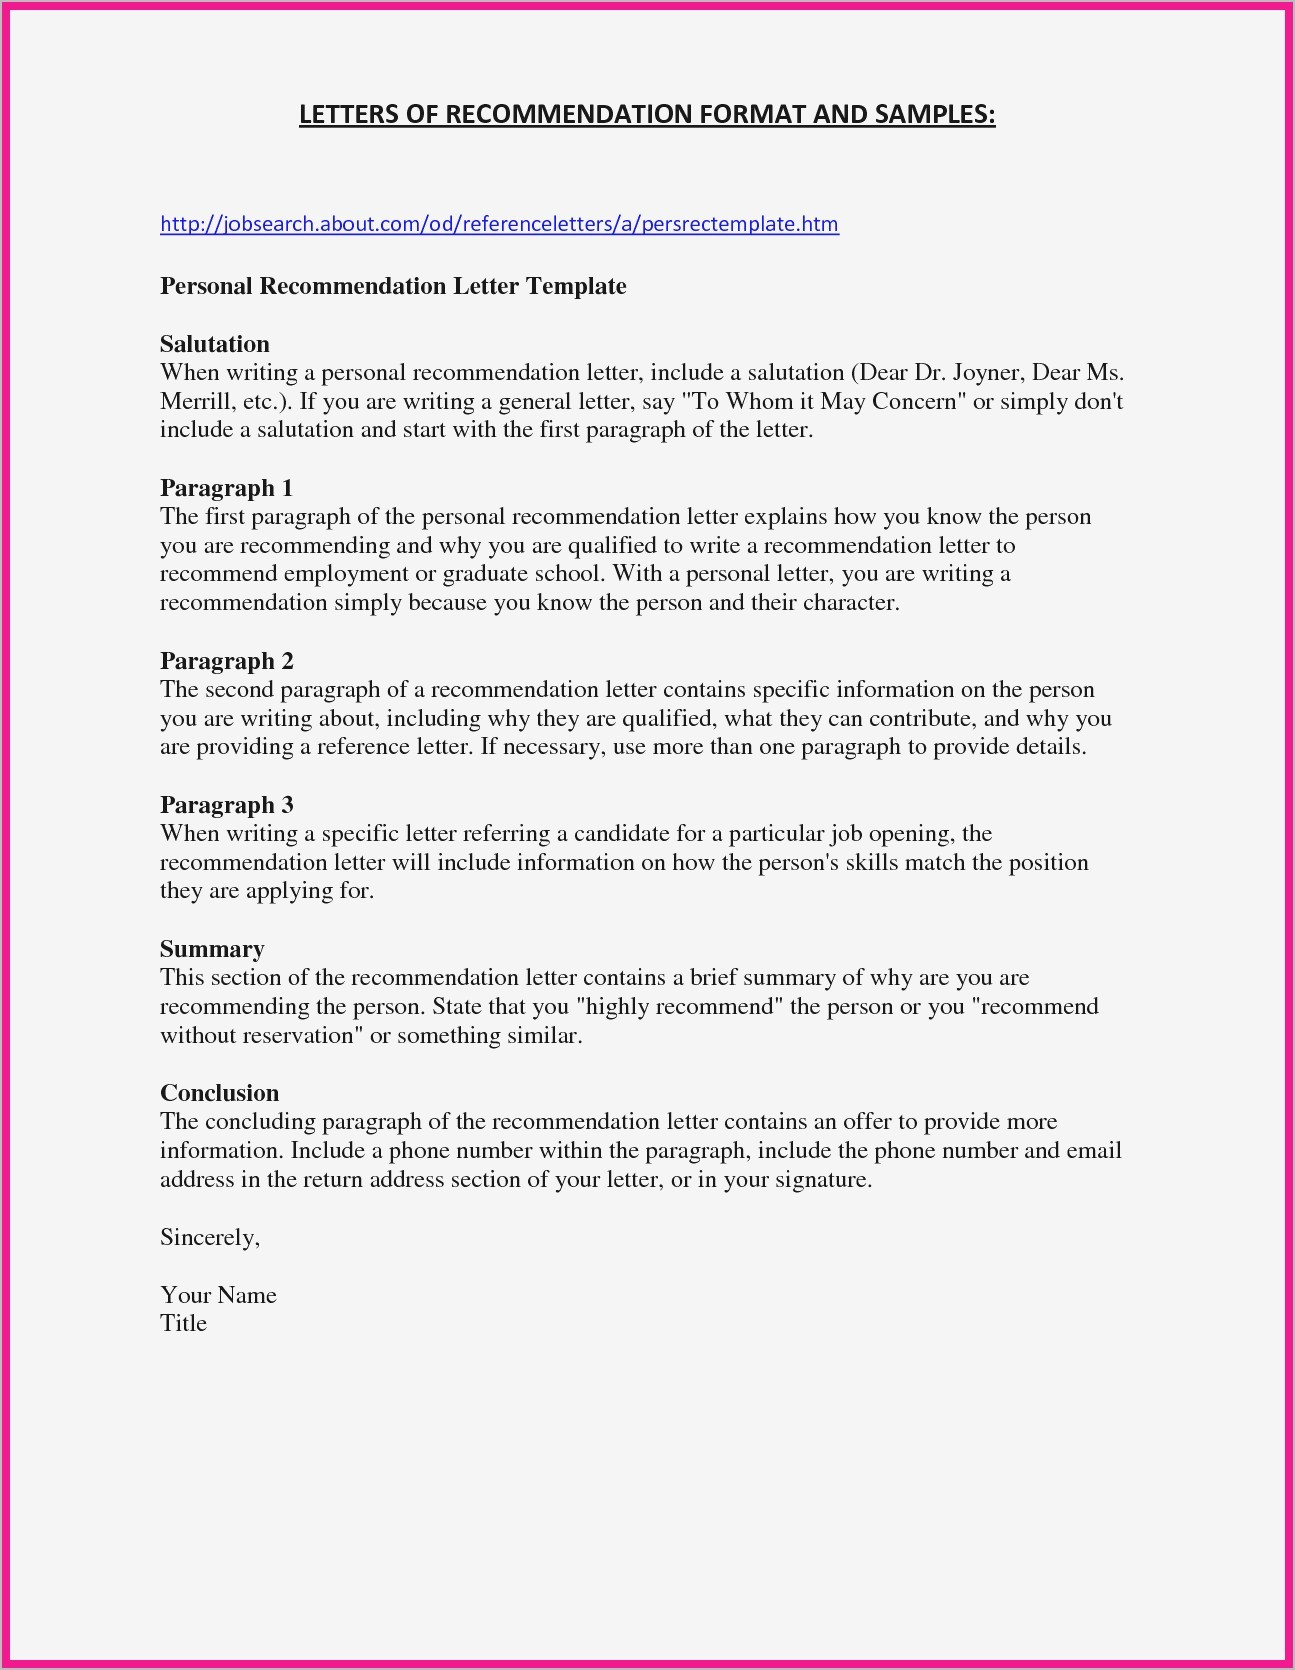 Personal Reference Letter Template - Sample Re Mendation Letter for Job Refrence Personal Reference